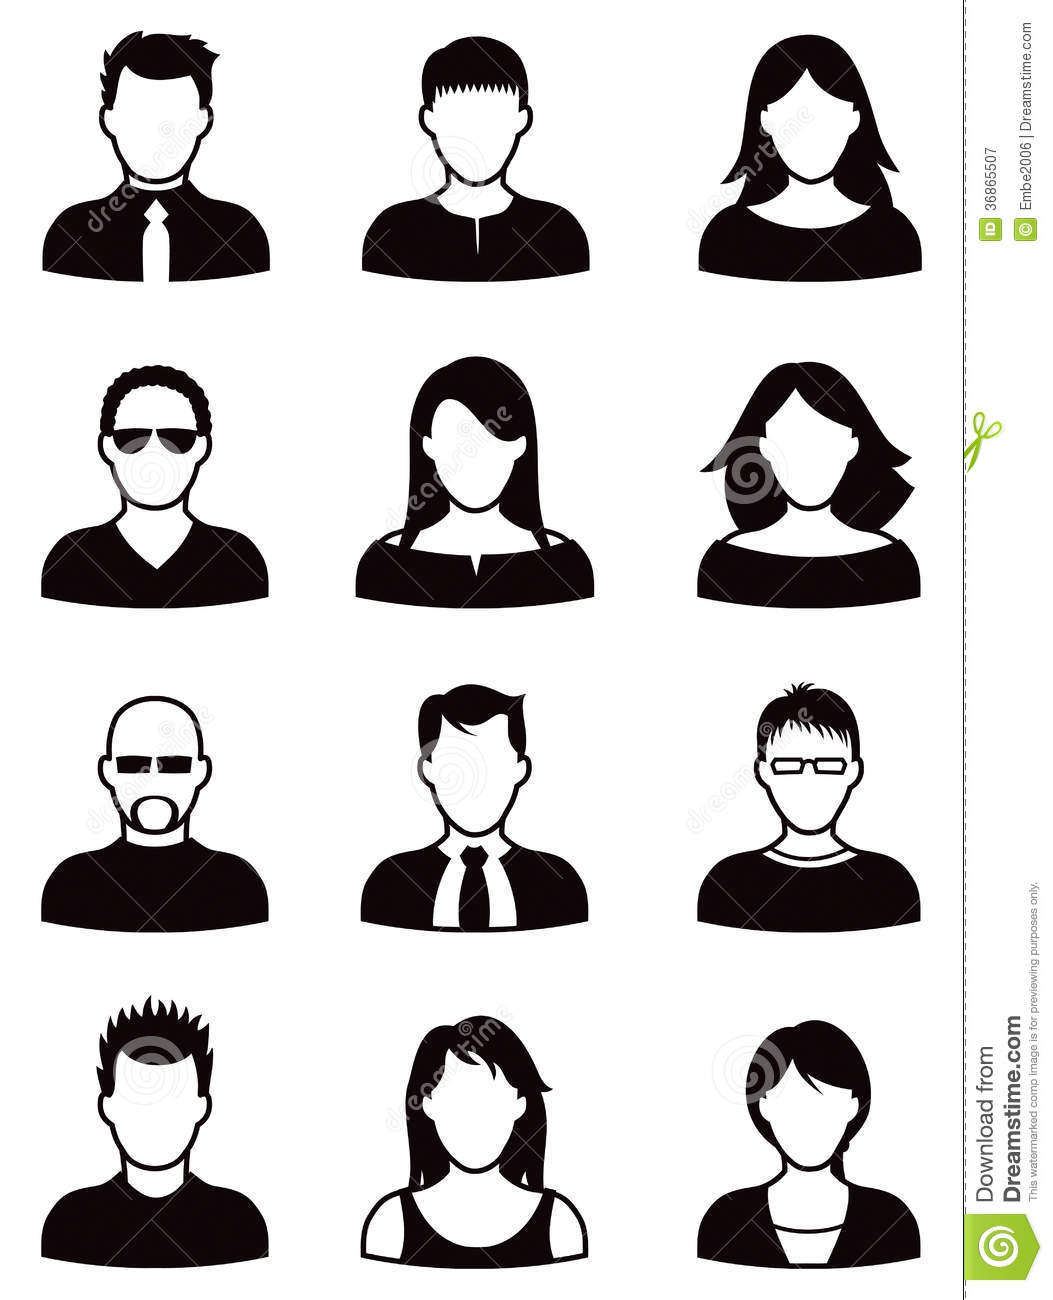 man and woman icon people icon set royalty free stock photography image 4530